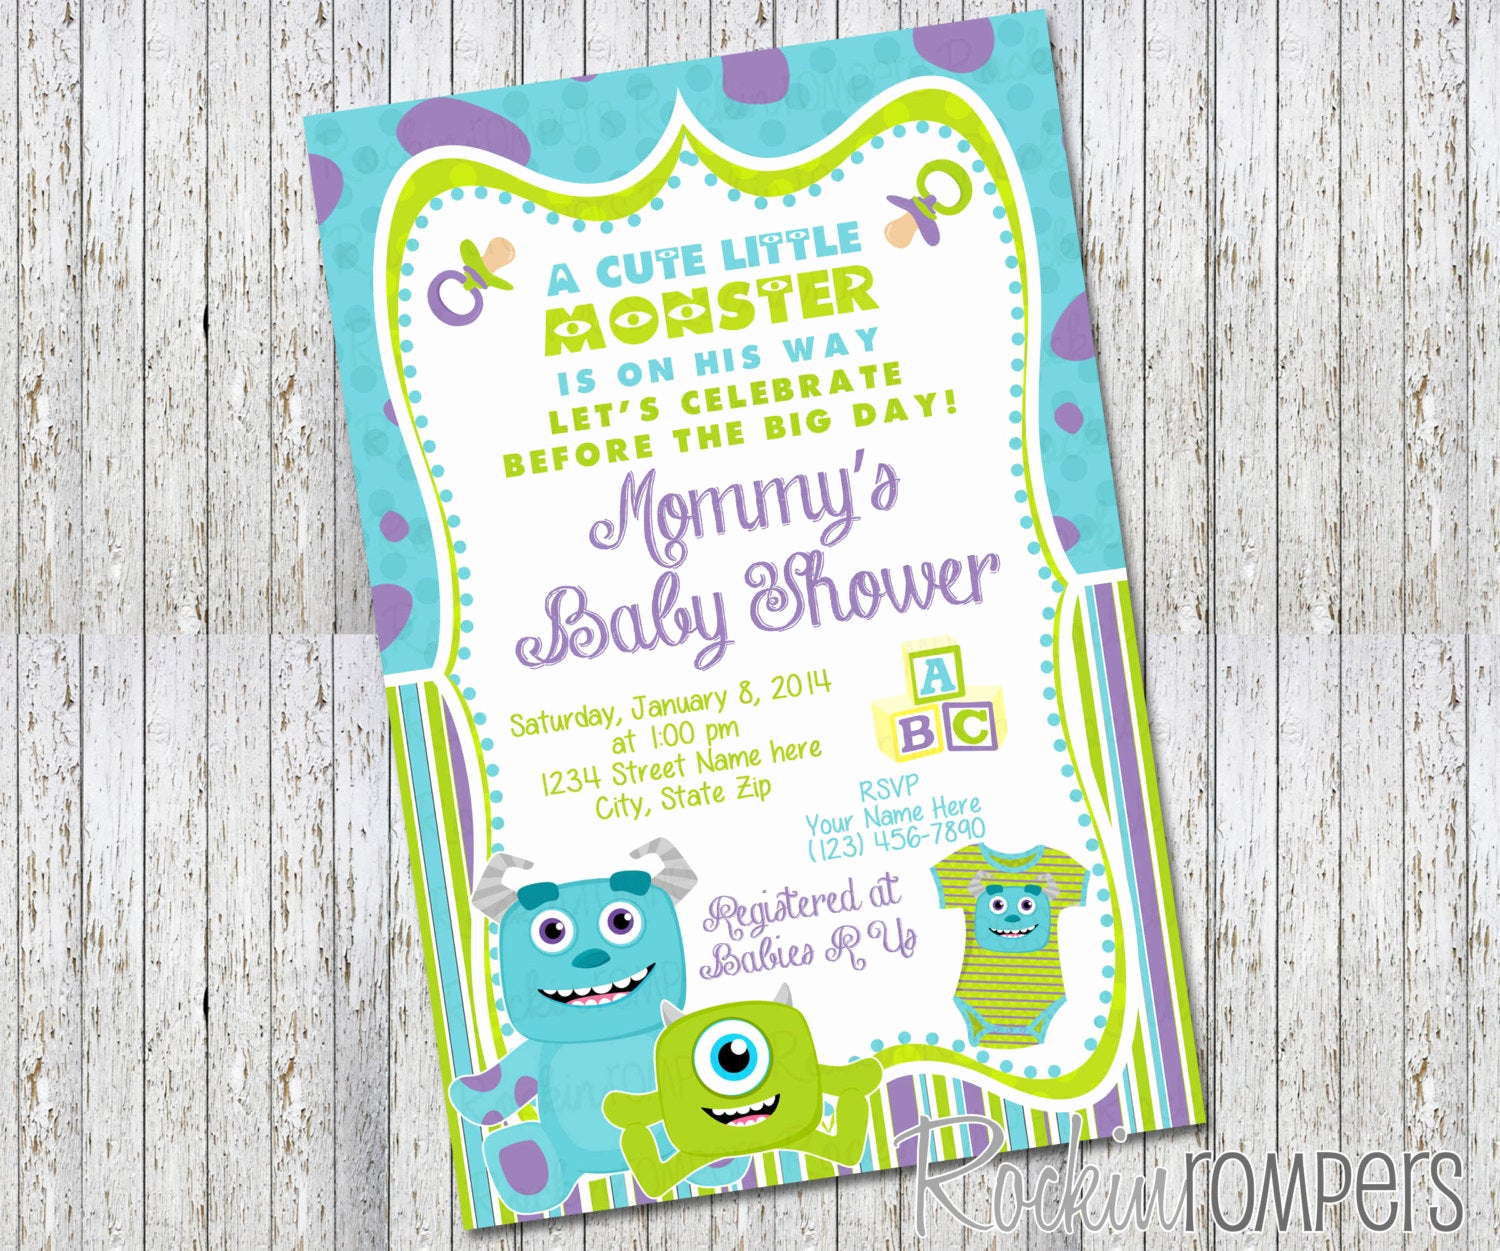 Monsters Inc Baby Shower Invitation Beautiful Monsters Inc Inspired Baby Shower Invitation by Rockinrompers